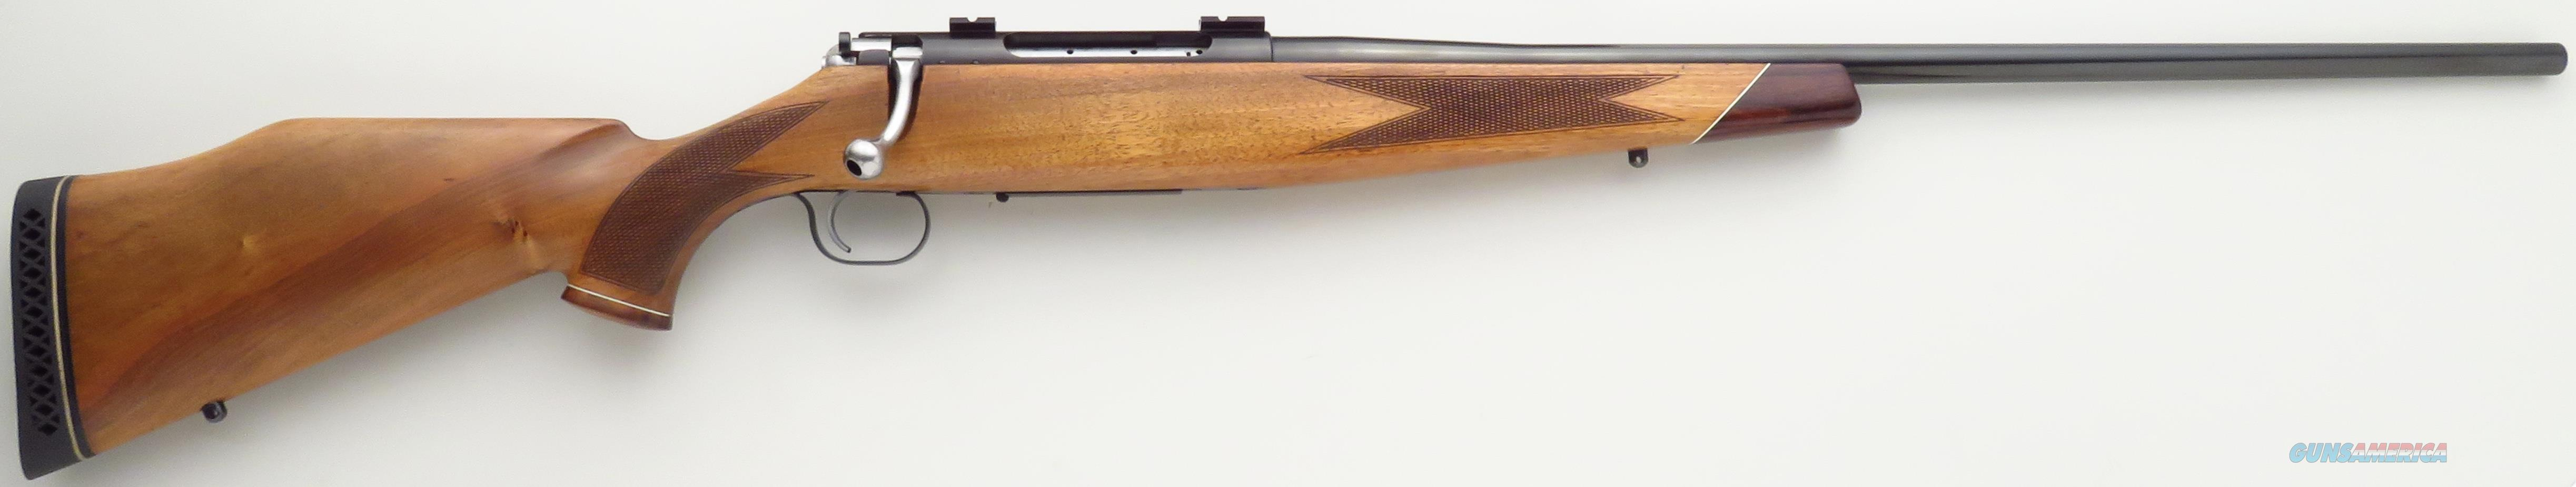 Weatherby .378 Wby. Mag., early rifle on Shultz & Larsen action, possibly unfired  Guns > Rifles > Weatherby Rifles > Sporting